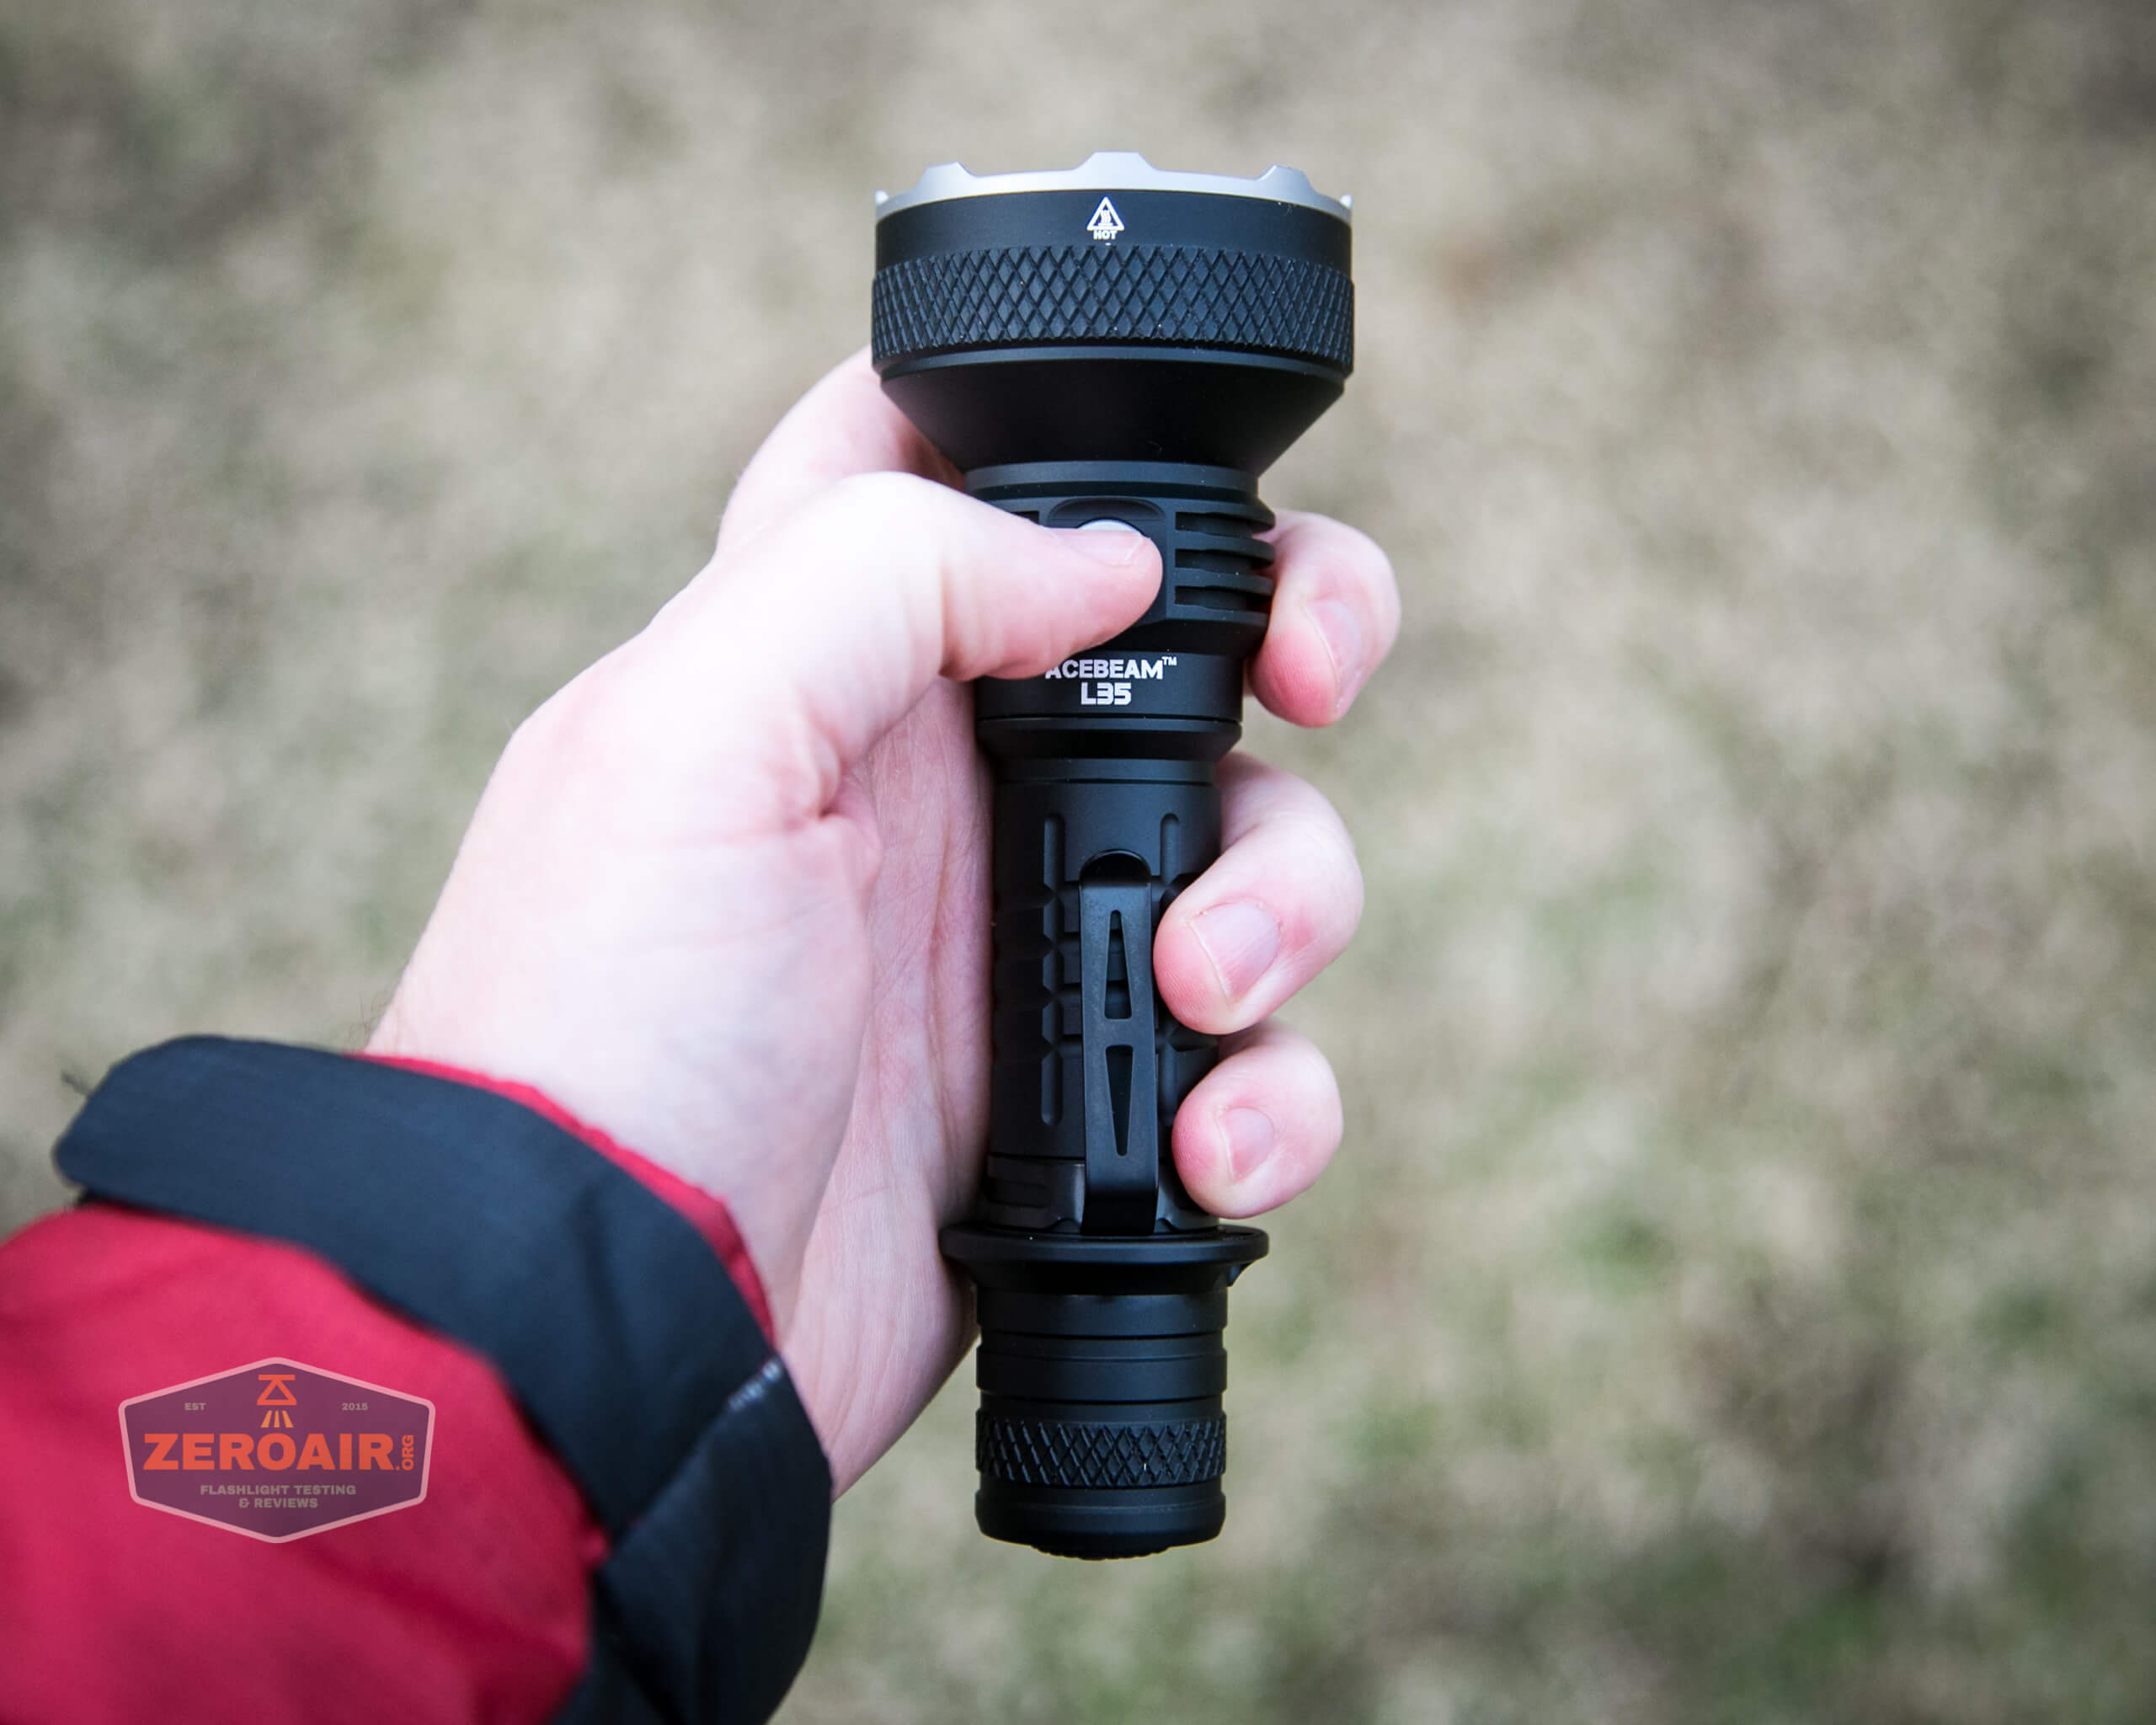 Acebeam L35 brightest tactical flashlight in hand